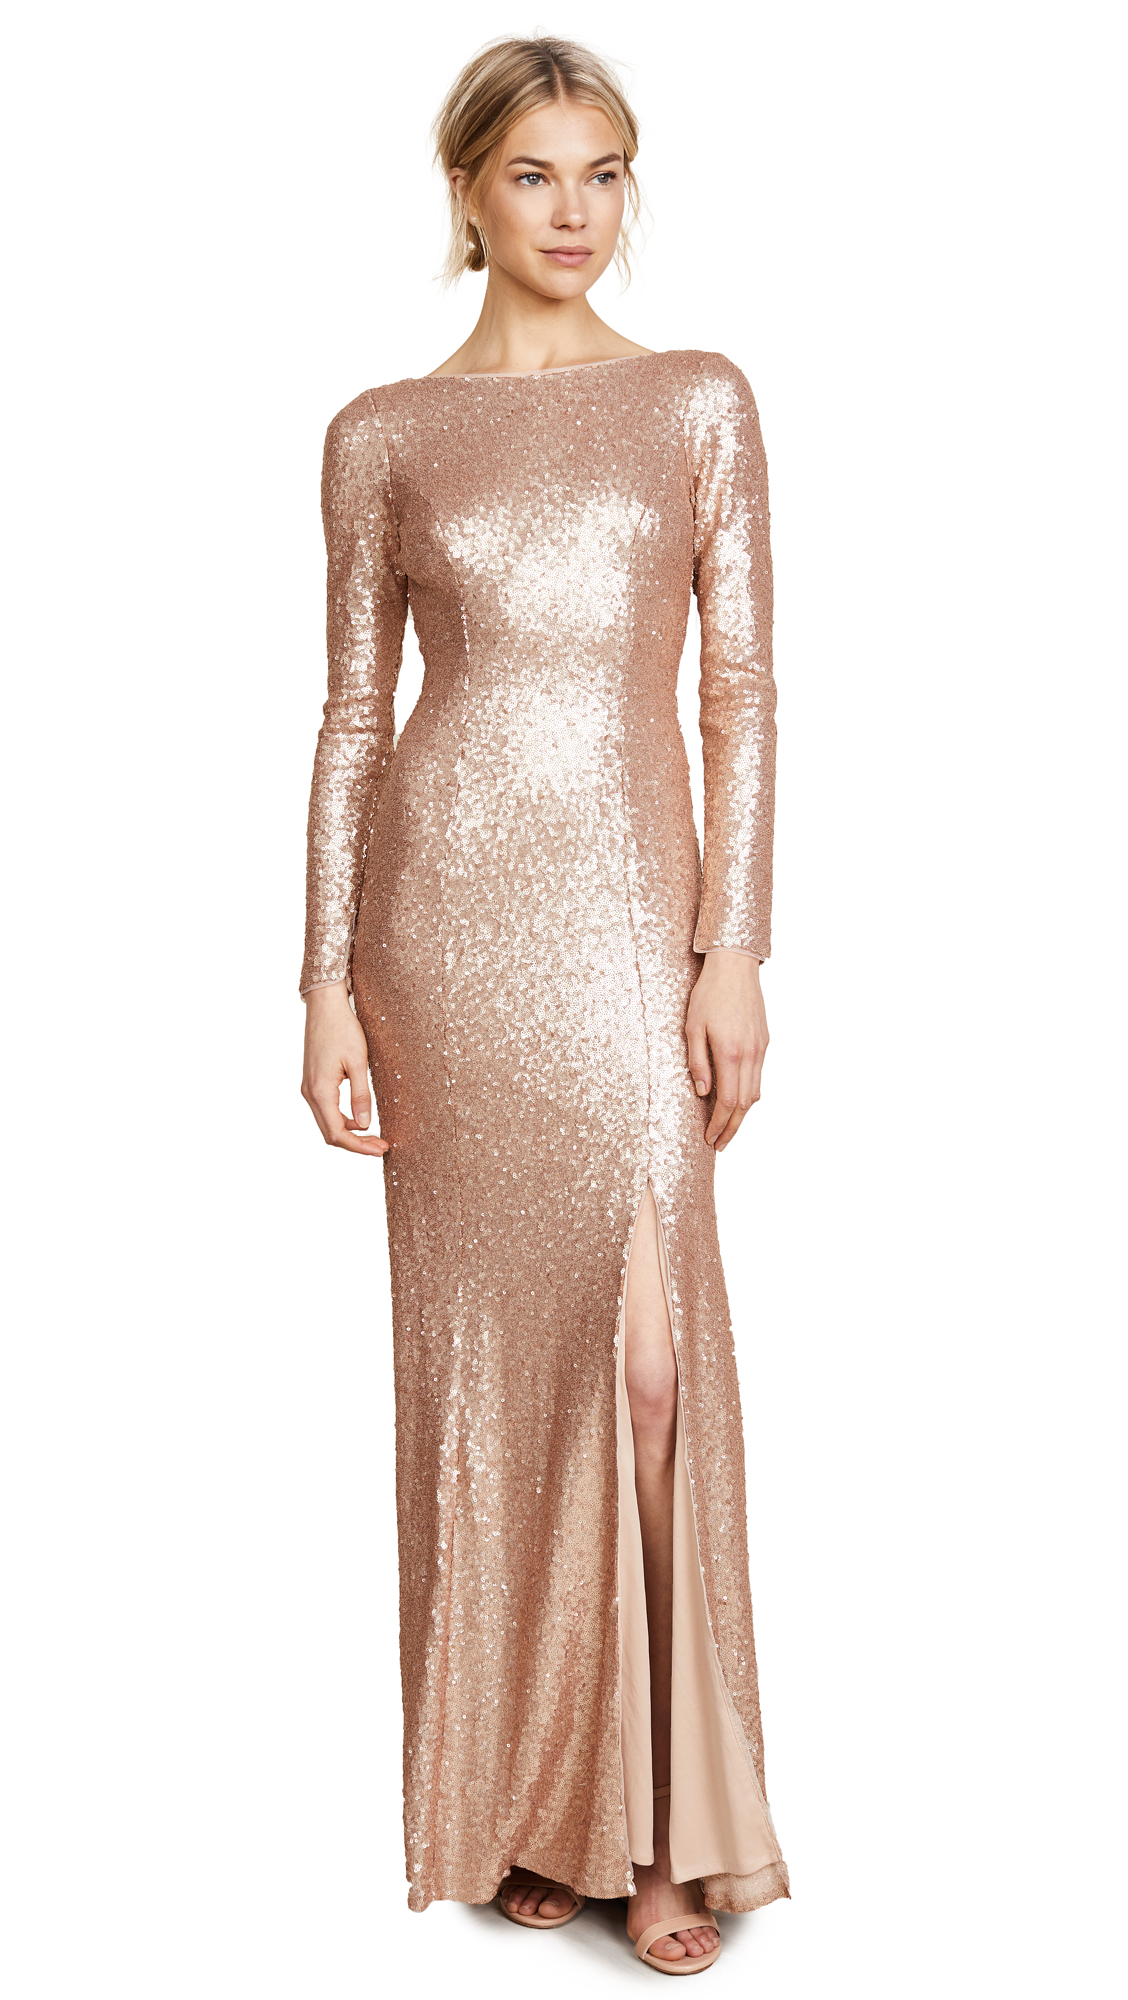 Theia Giselle Bateau Sequin Gown - Matte Rose Gold